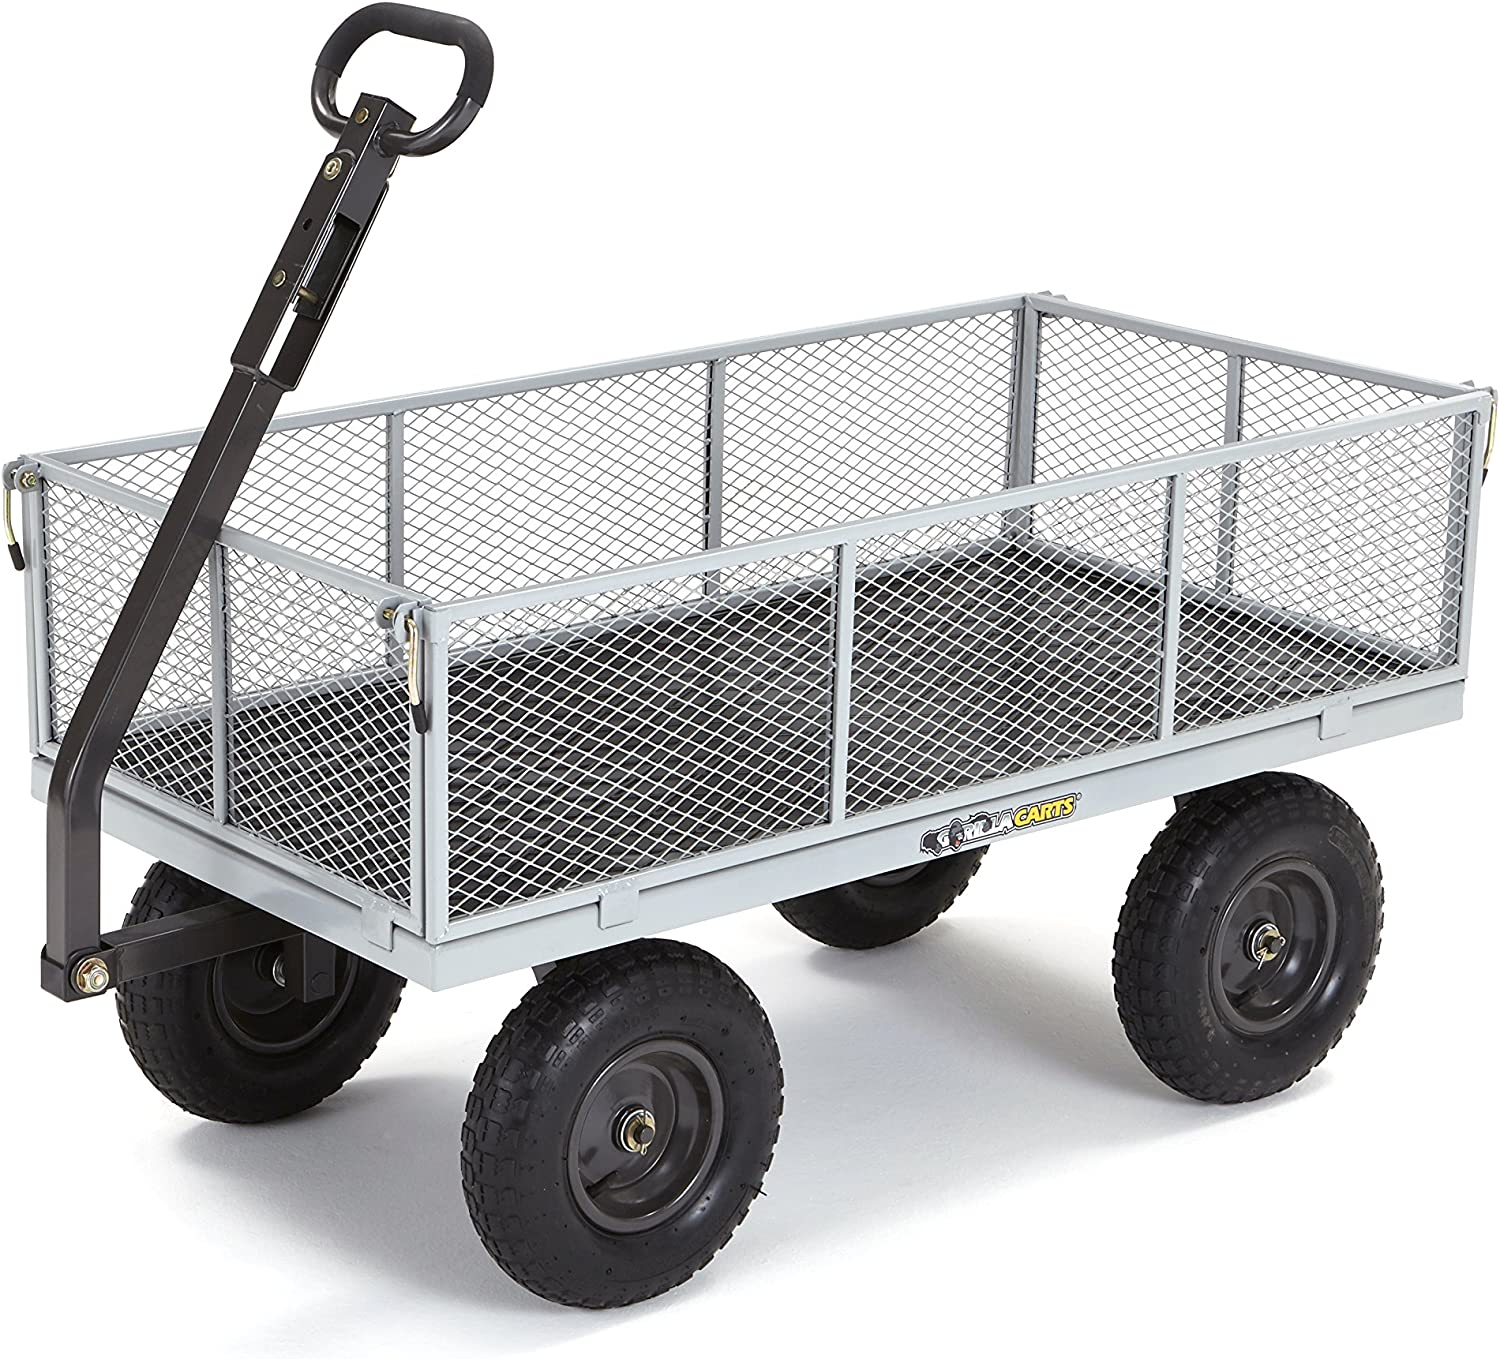 <strong>Gorilla Carts Heavy-Duty Steel Utility Cart</strong>